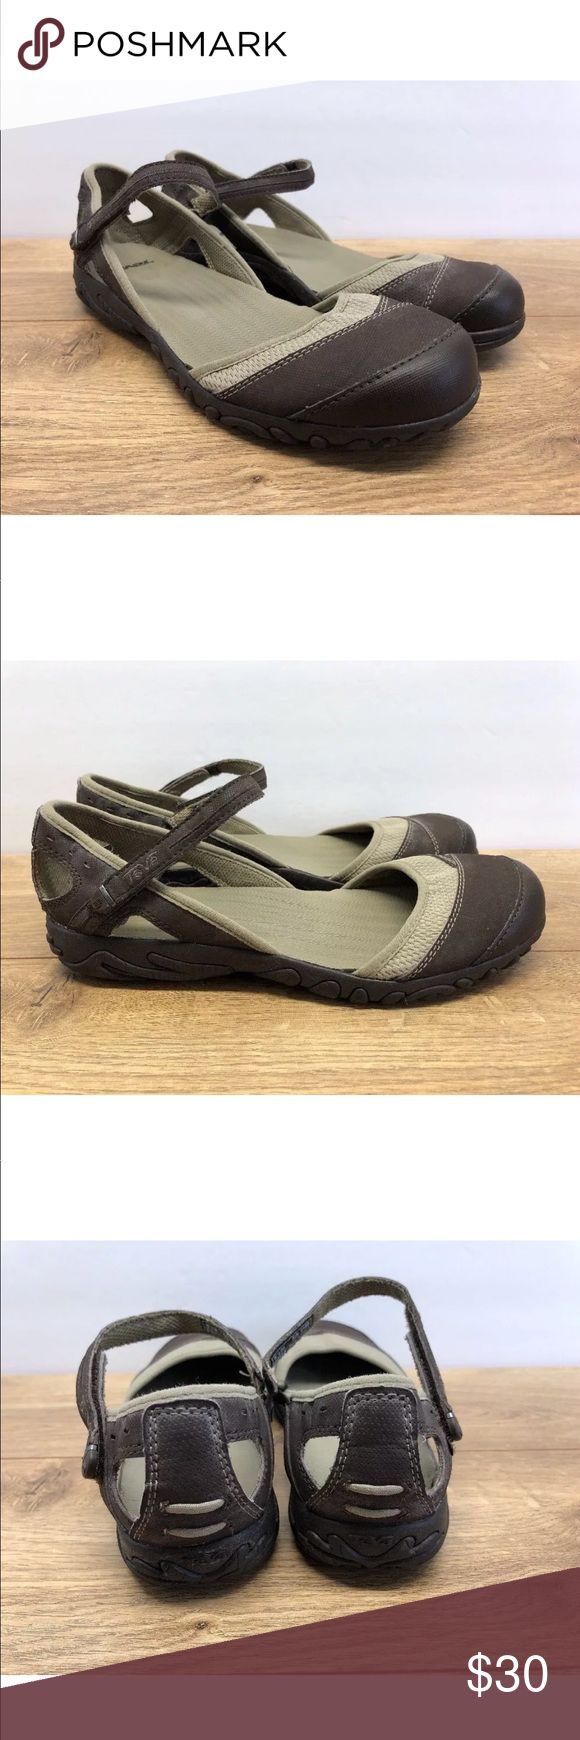 TEVA Sz 9 Hiking Water Sport Hiking Sandals -AQ12 TEVA Water Sport Hiking Sandals Round Closed Toe ankle Strap Sz 9 in good condition. These shoes do show signs of wear but still have a ton of life left in them.   Please see photos for color, style and condition. Teva Shoes Sandals